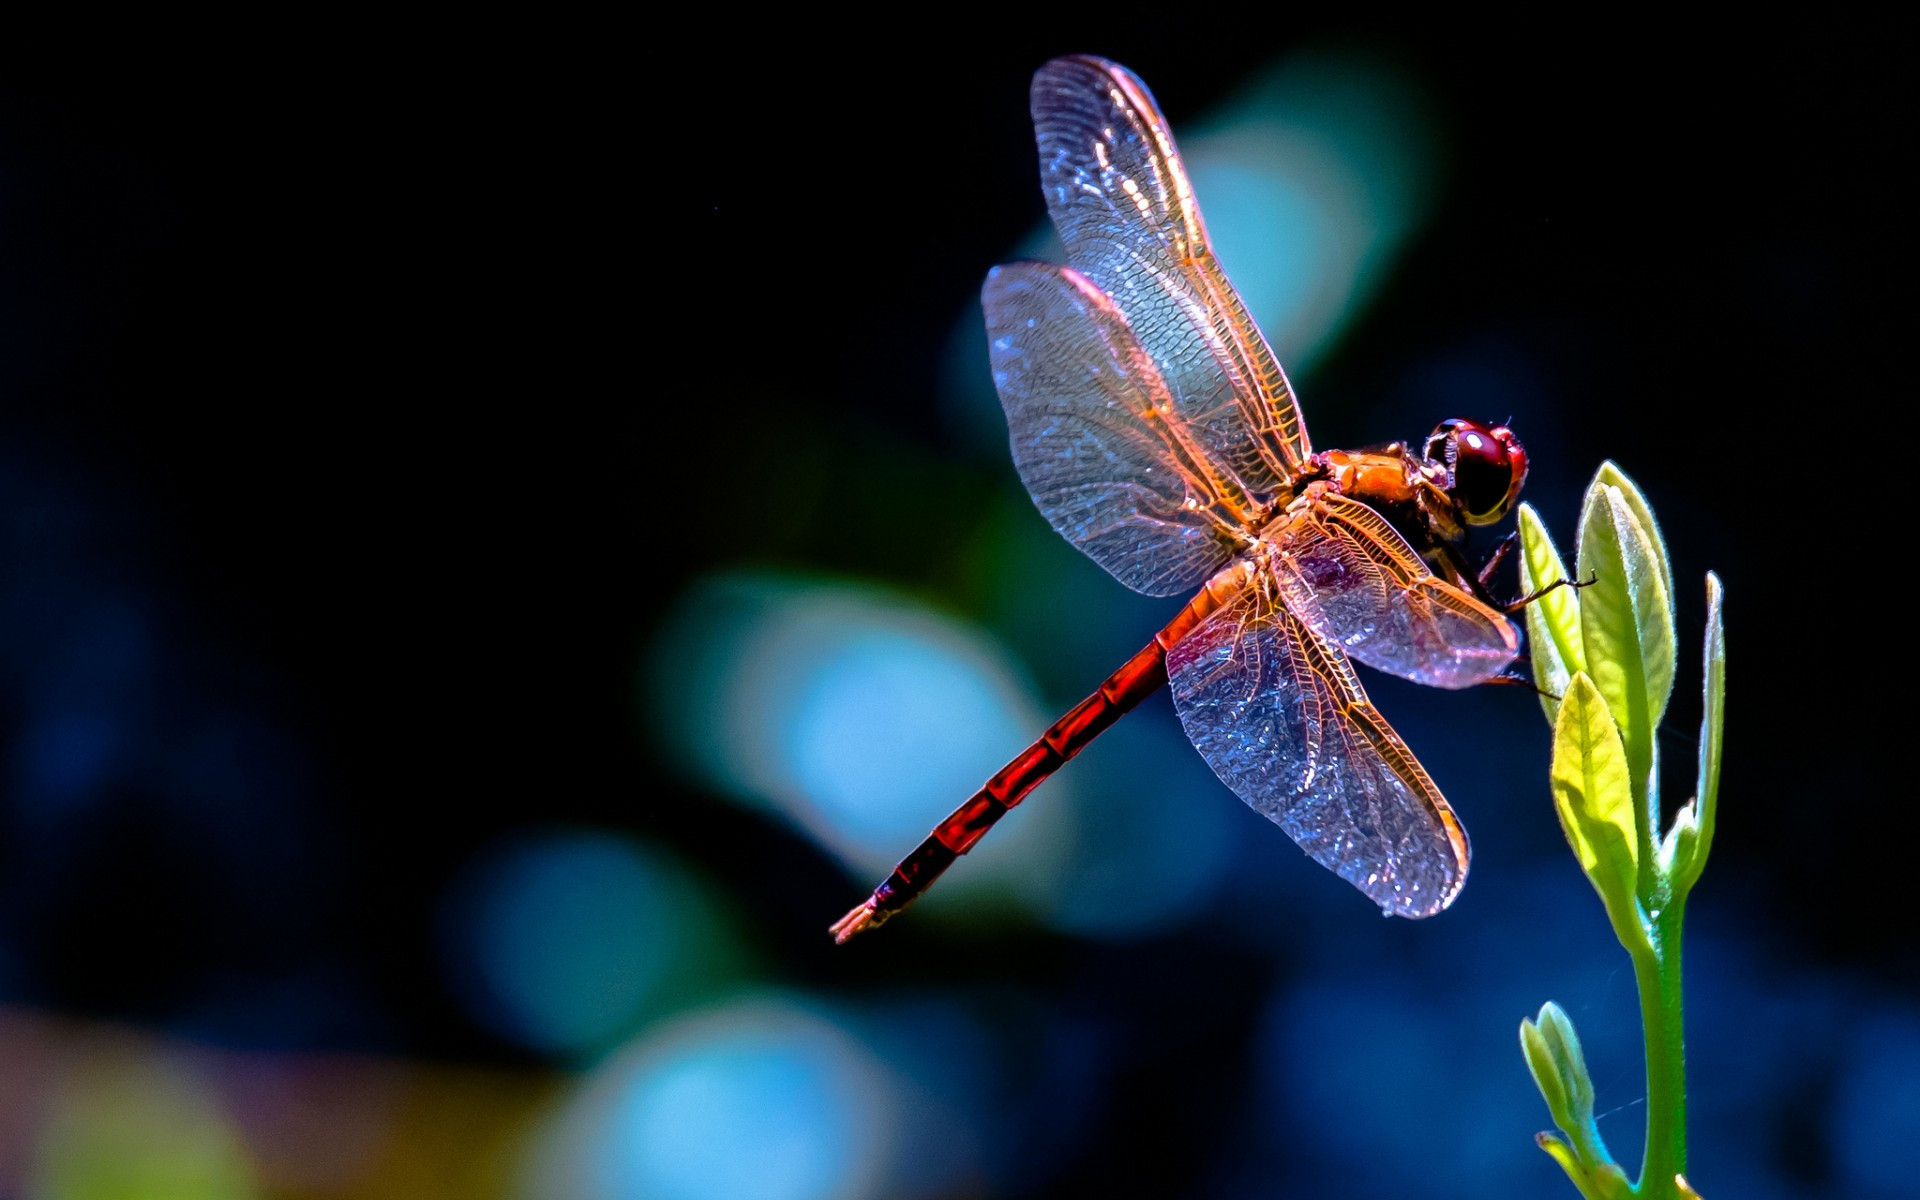 Res: 1920x1200, Dragonflies images Dragonfly HD wallpaper and background photos